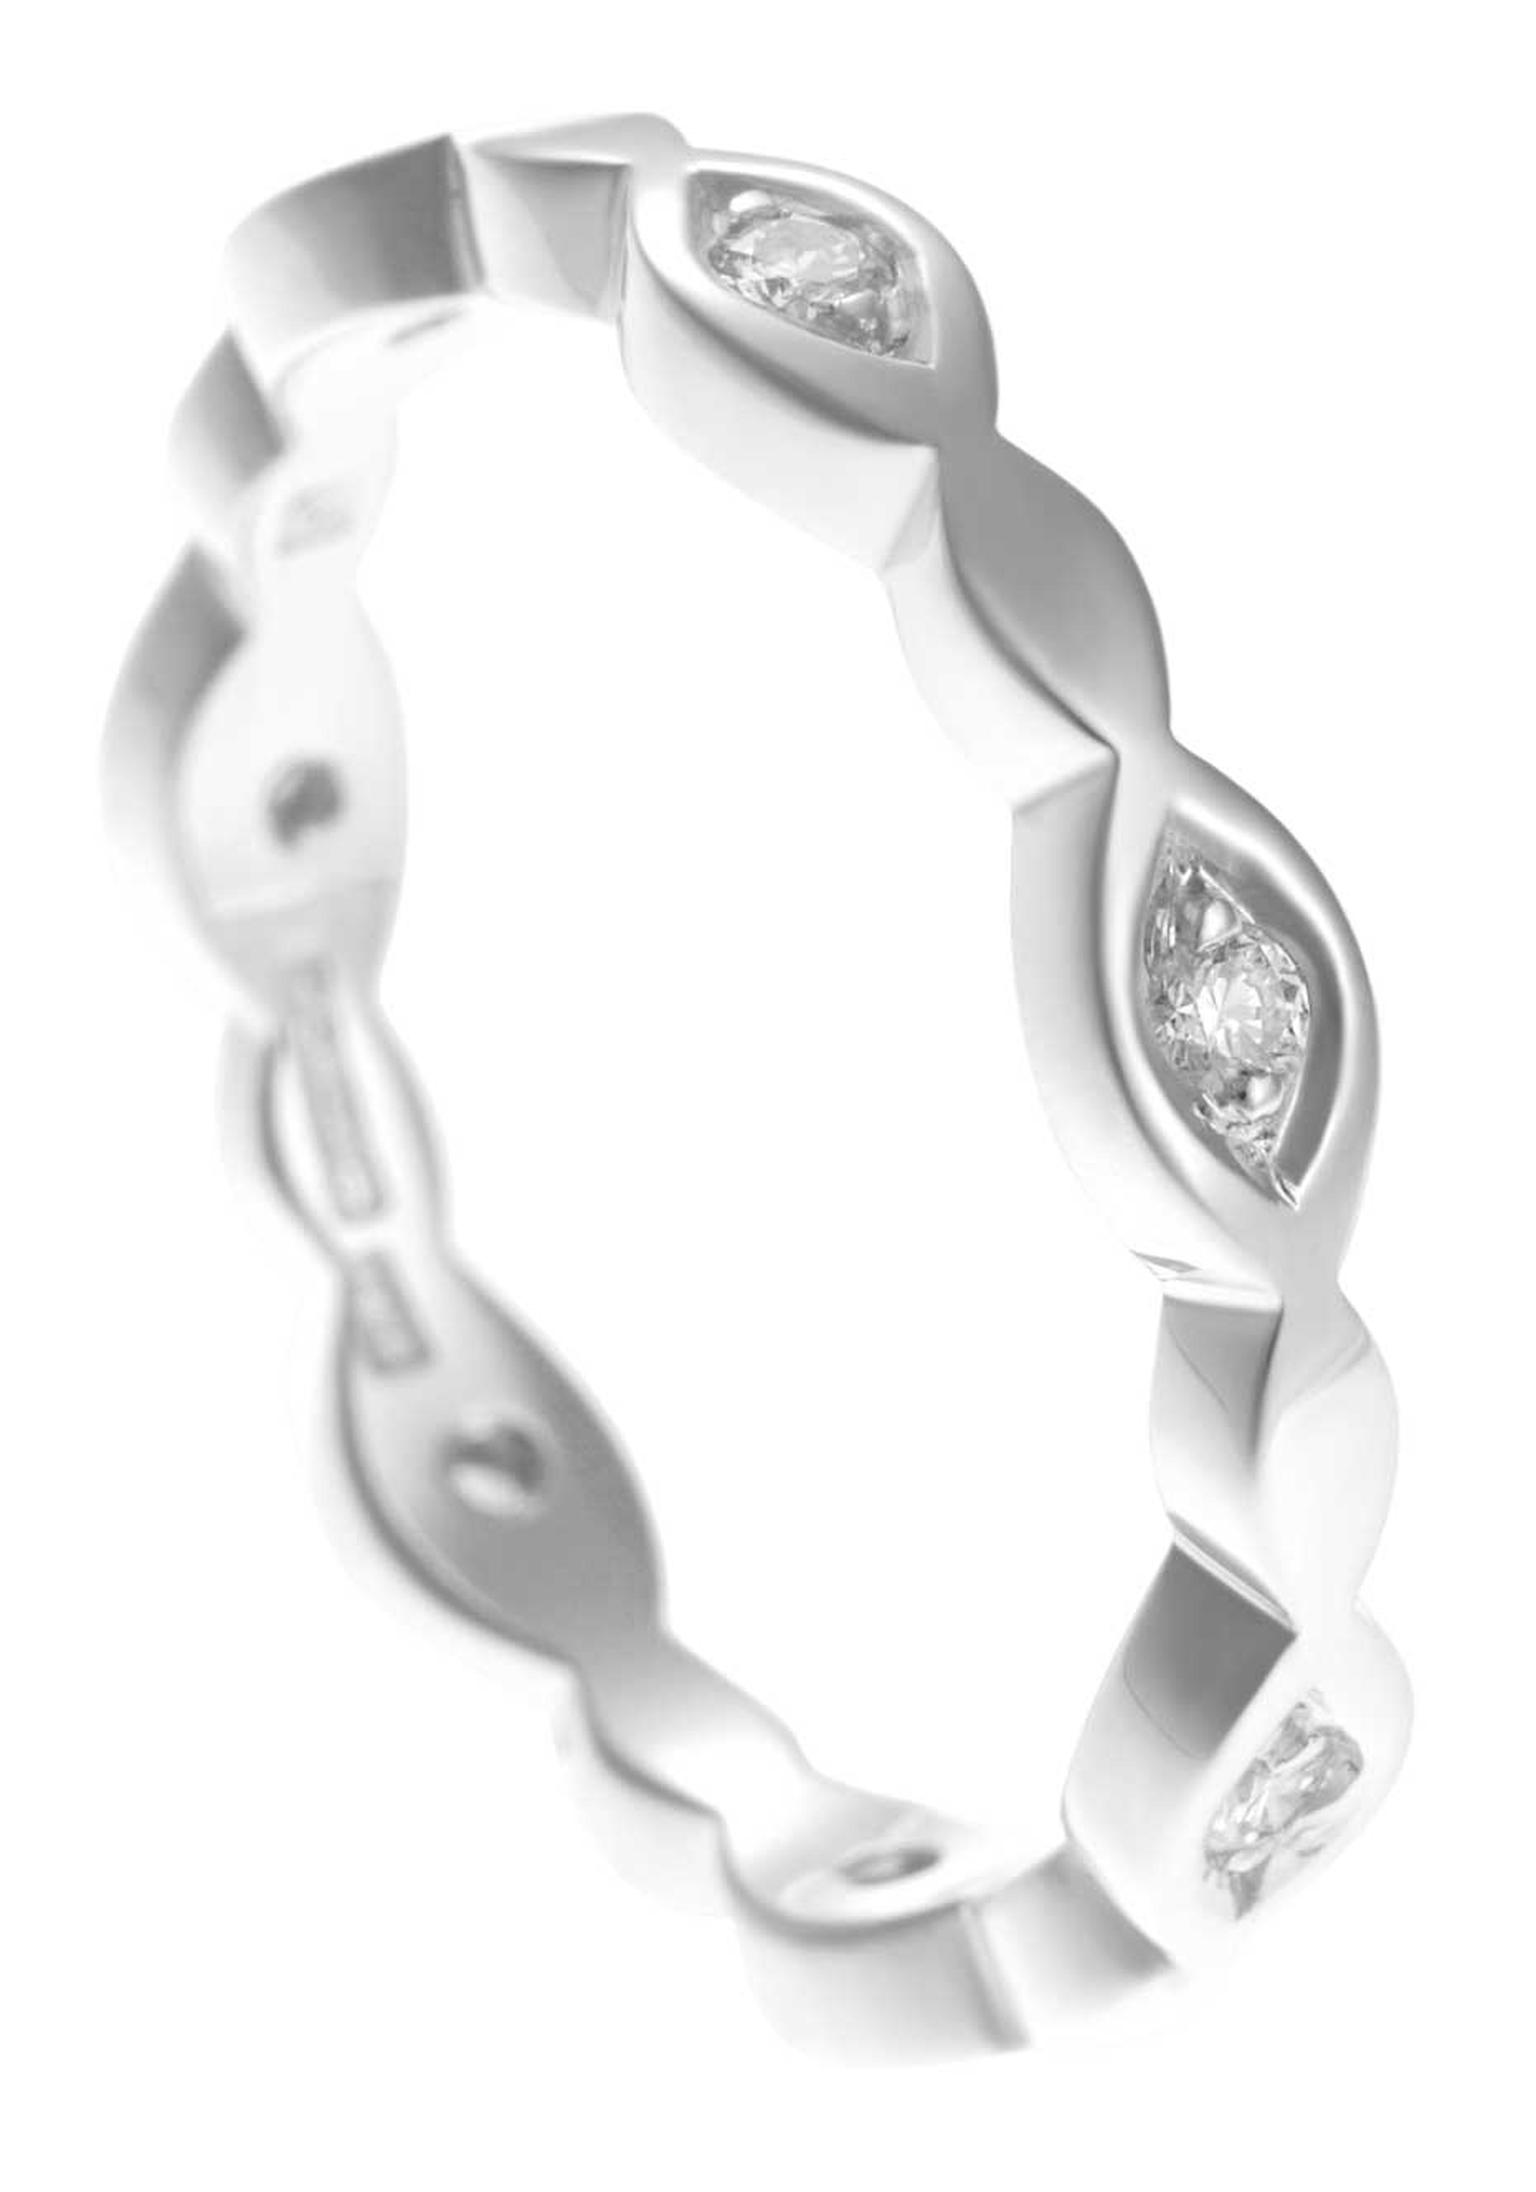 Fairtrade white gold ring with brilliant-cut diamonds from HK Jewellery.